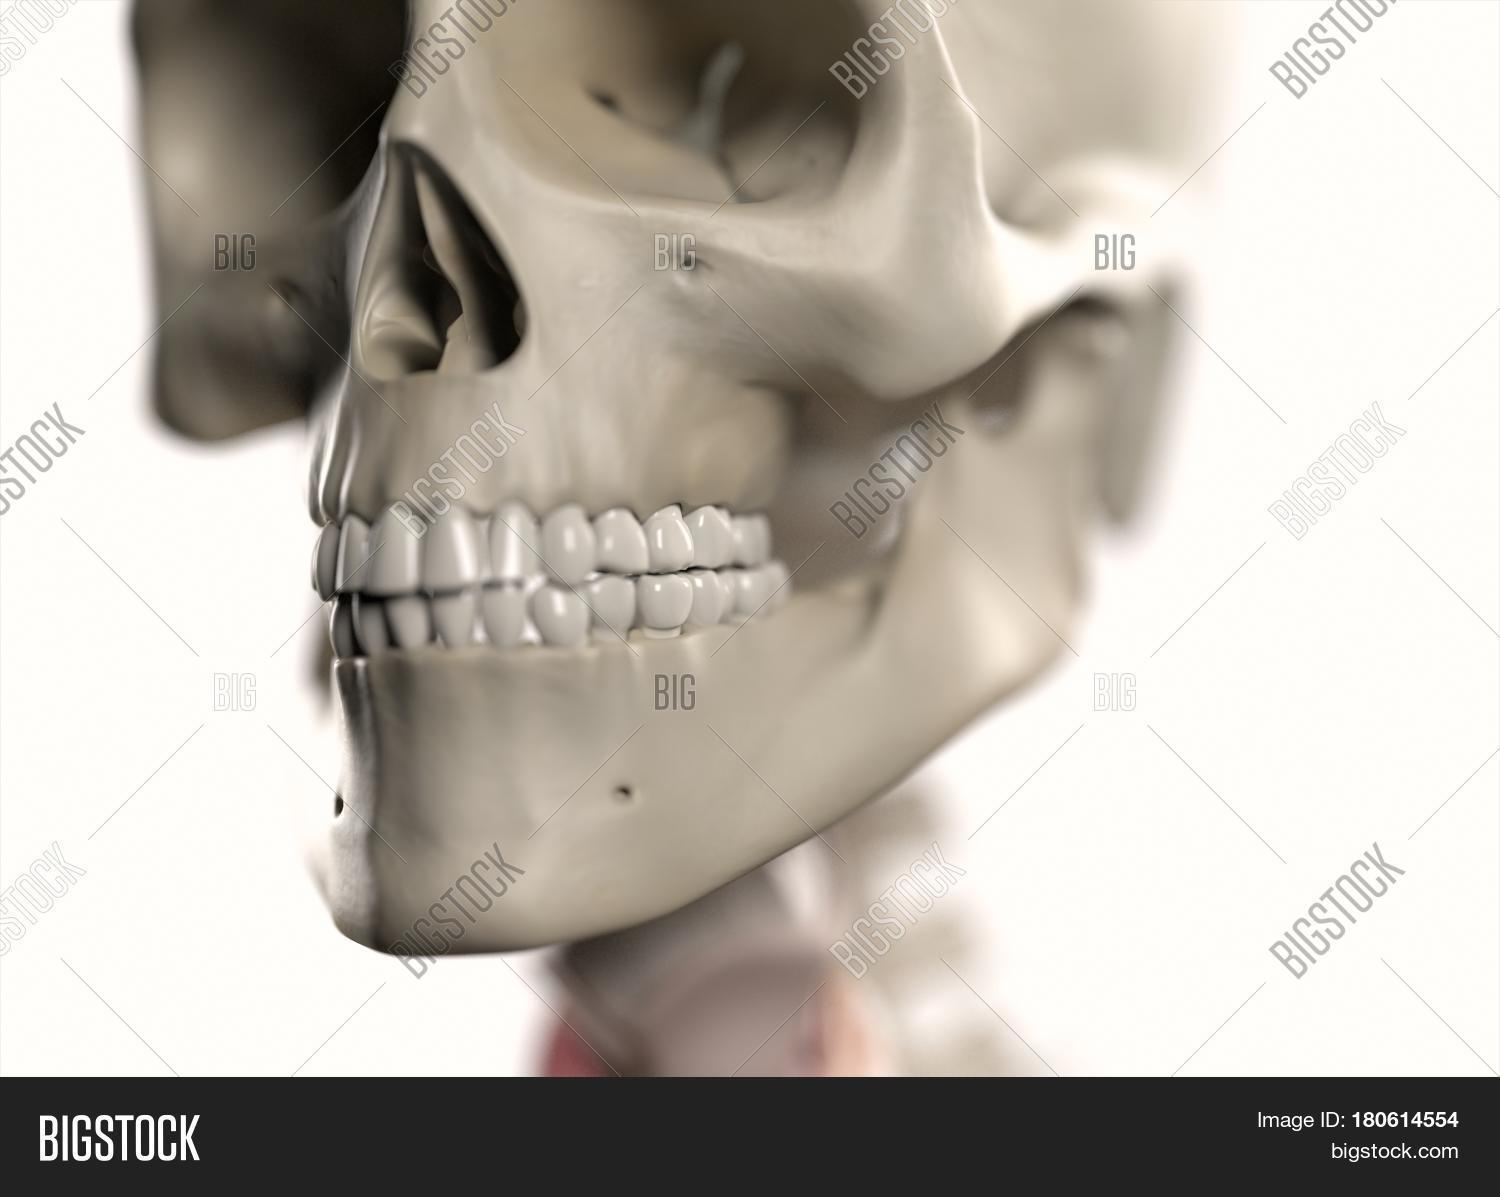 Anatomy Body Human Image Photo Free Trial Bigstock